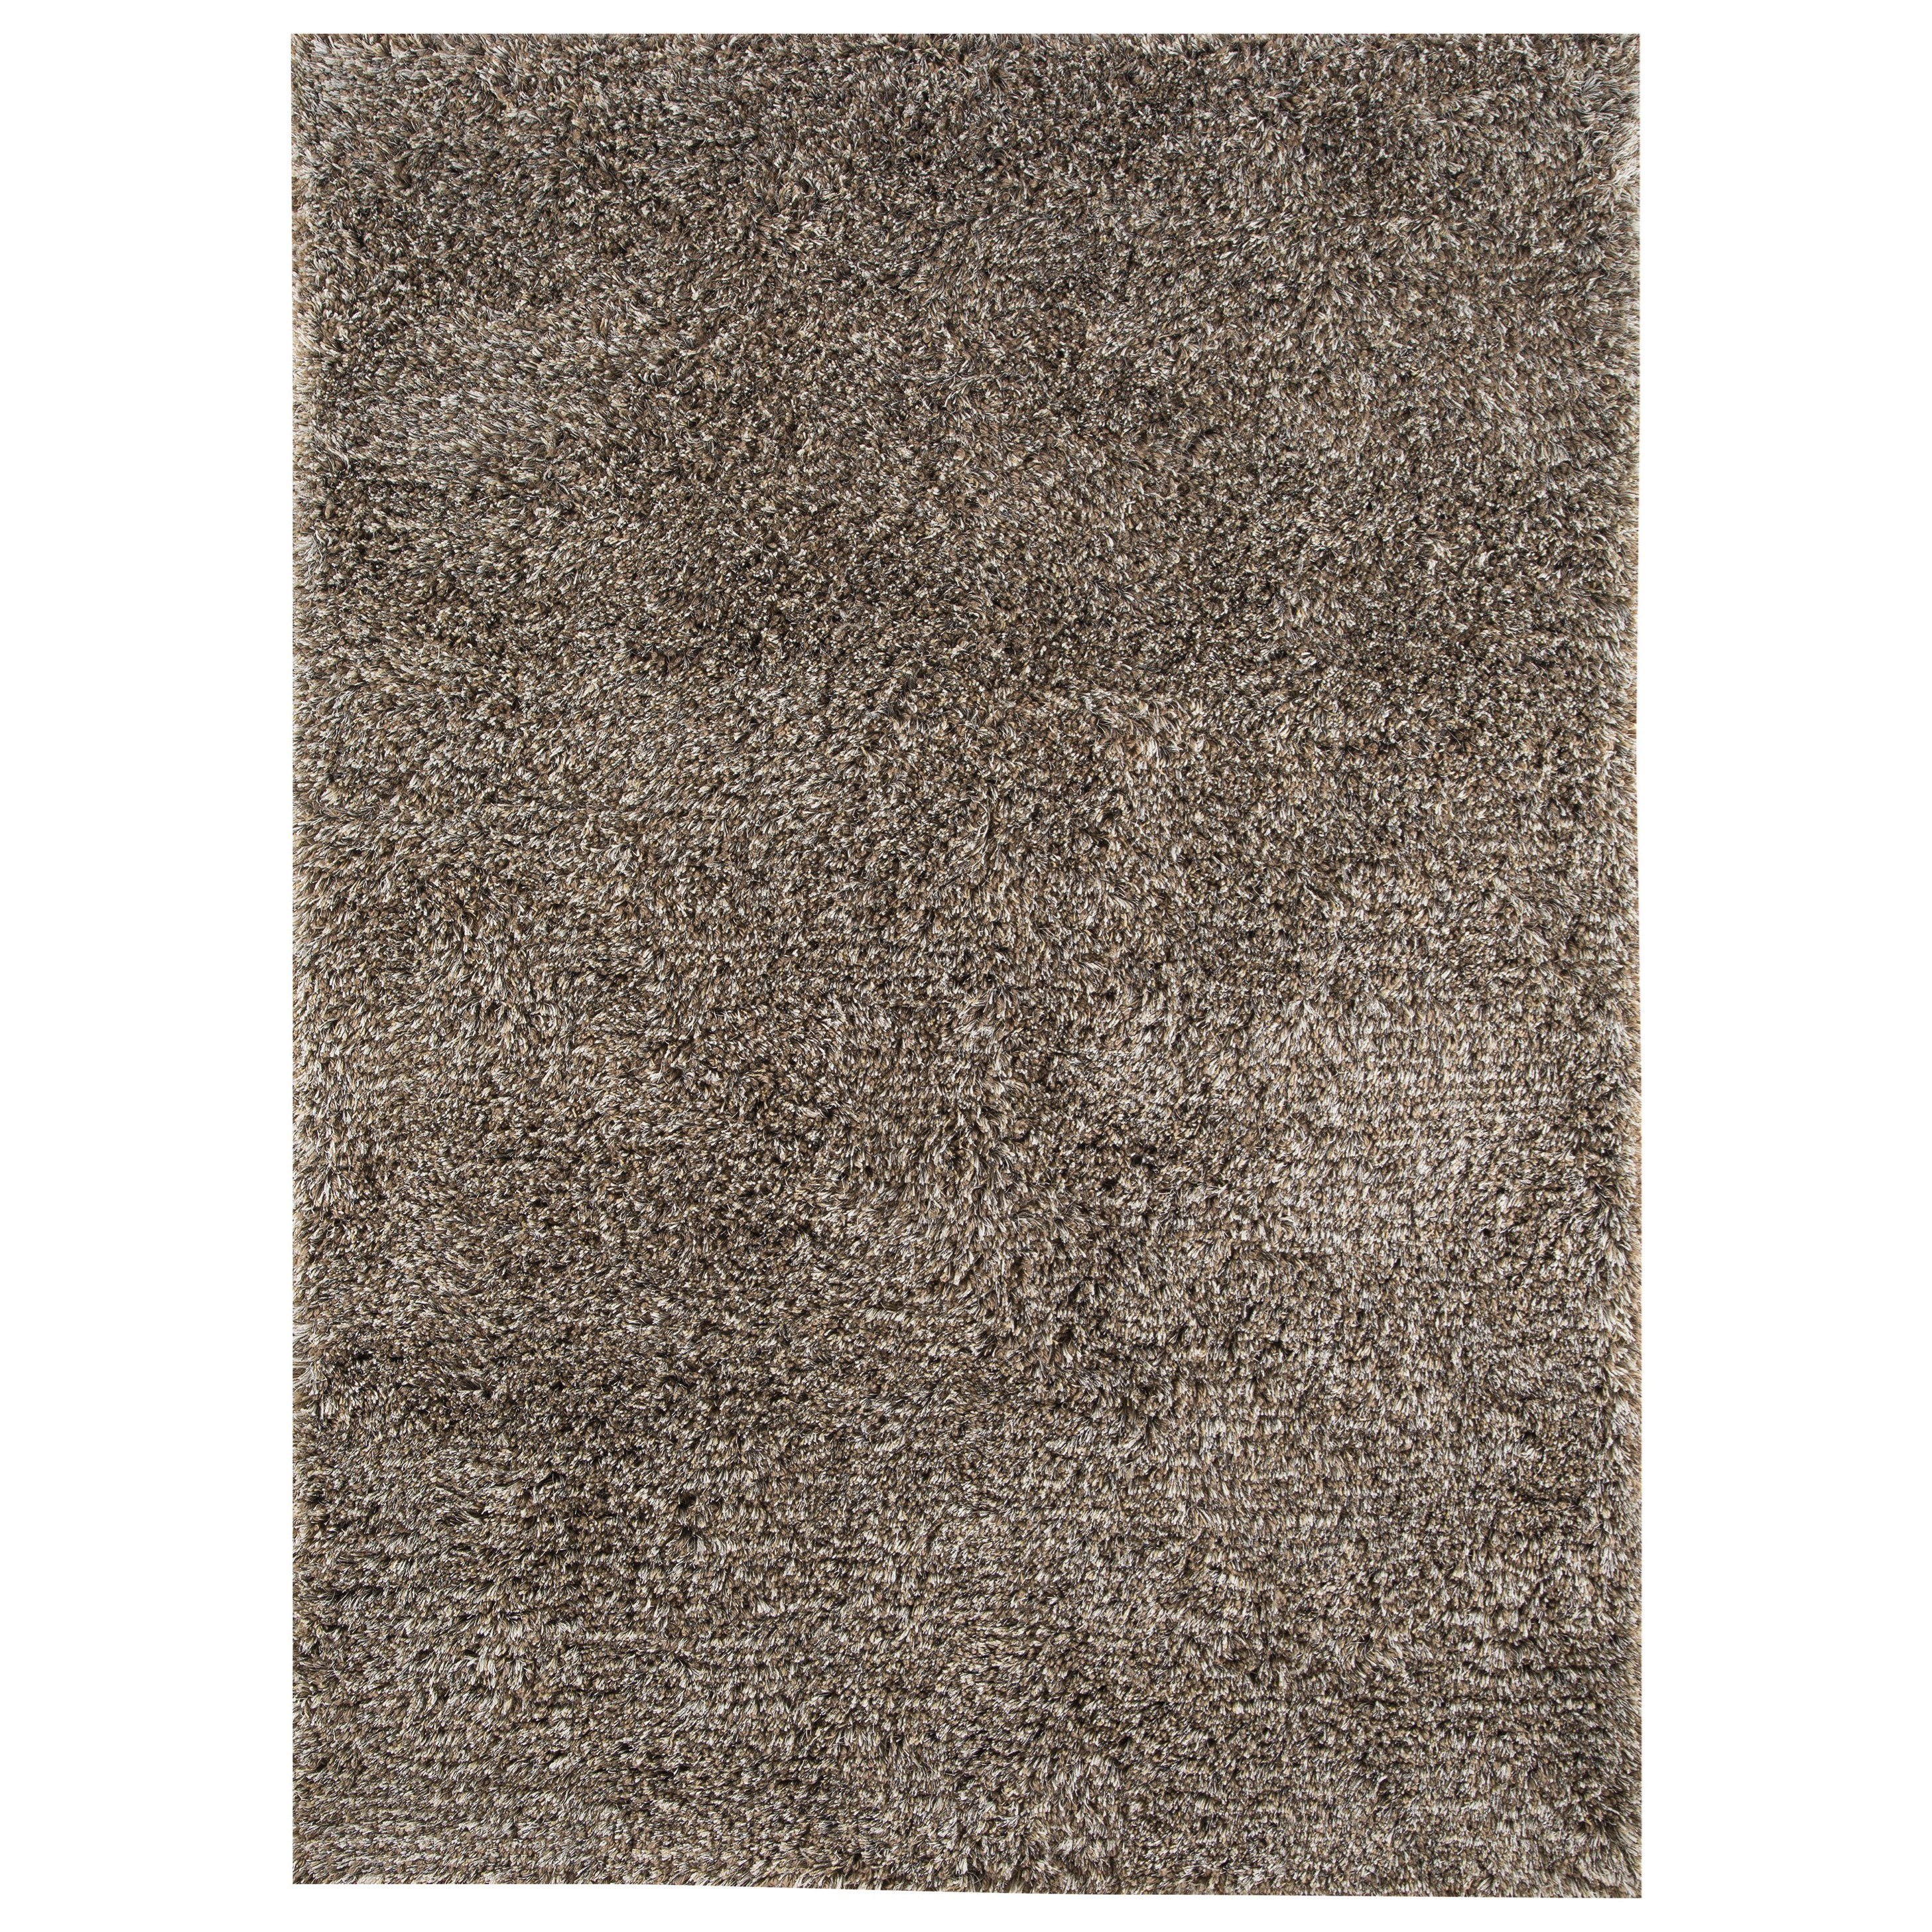 Transitional Area Rugs Wallas - Silver/Gray Large Rug by Signature Design by Ashley at Northeast Factory Direct